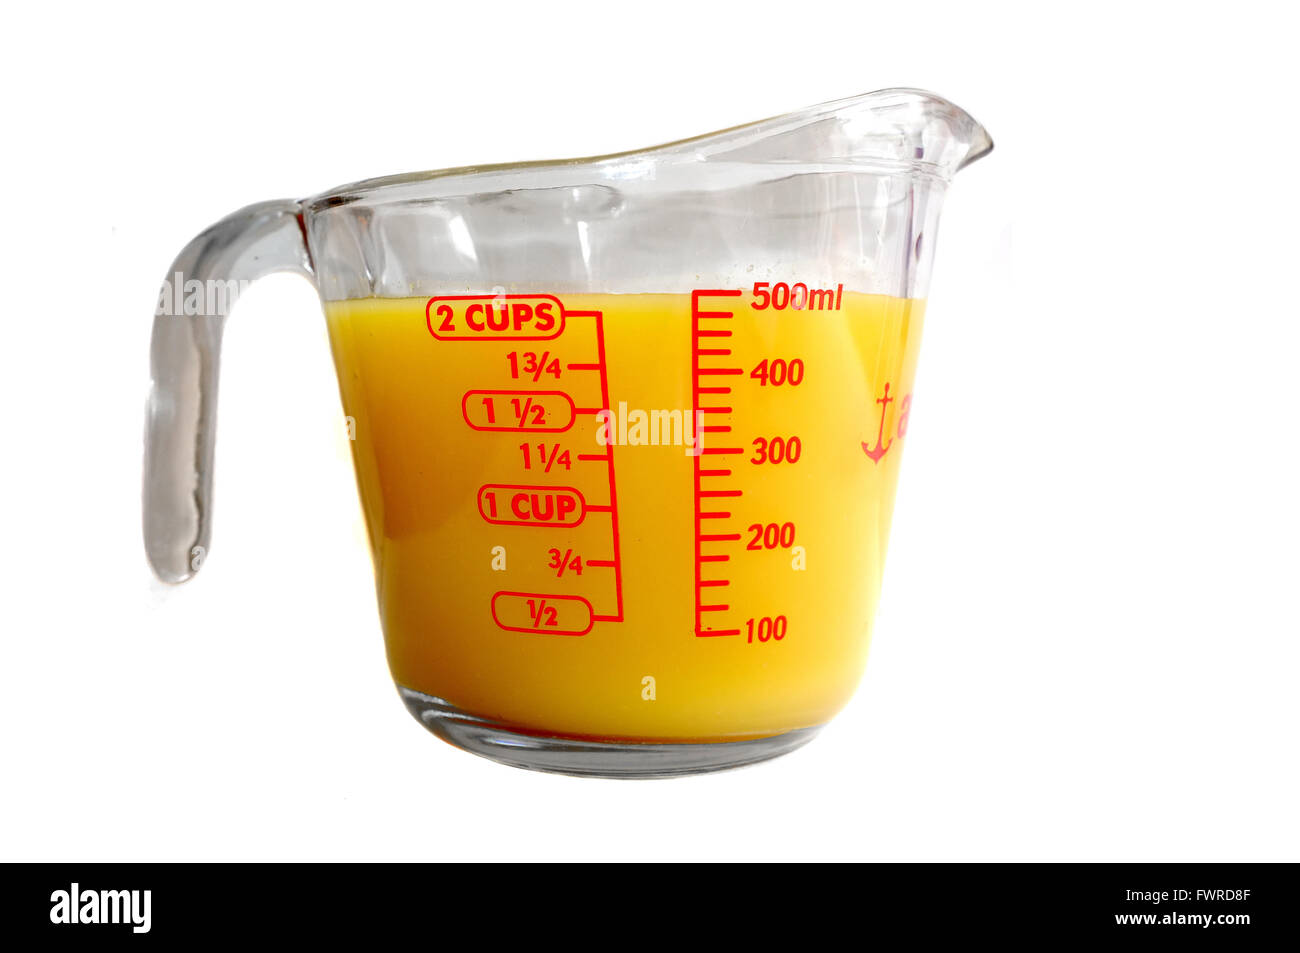 A Pyrex Measuring Jug Full Of Orange Coloured Liquid